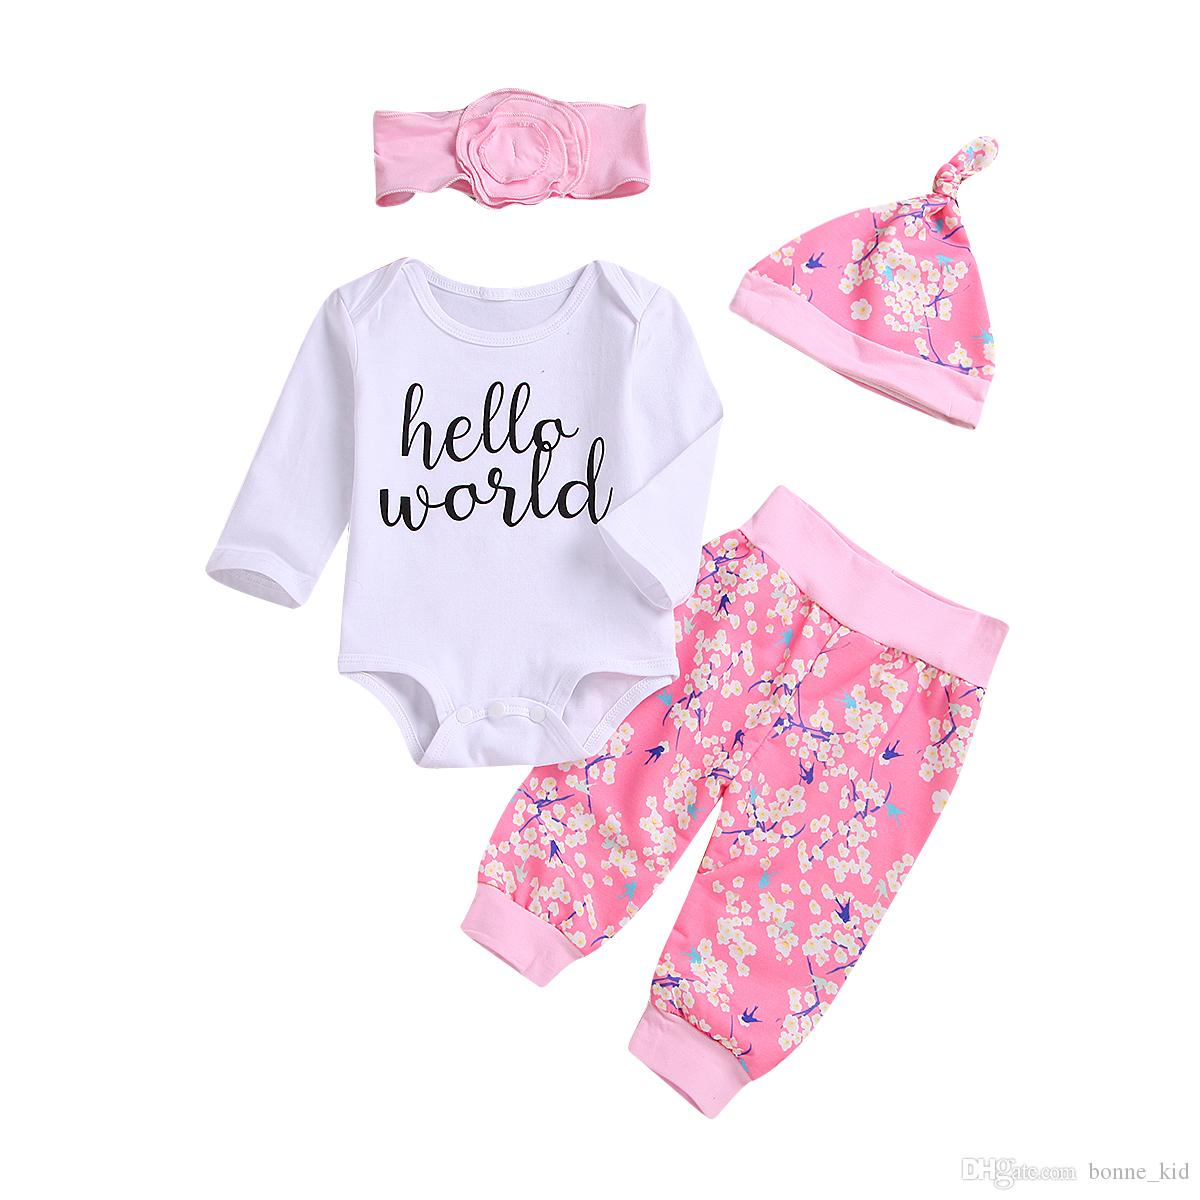 20a14cf88f9 2019 Hello World Baby Girl Flower Clothing Romper+Pants+Headband+Hat Set  Outfit Long Sleeve Pink Kids Clothes Wholesale Boutique 0 24M From  Bonne kid